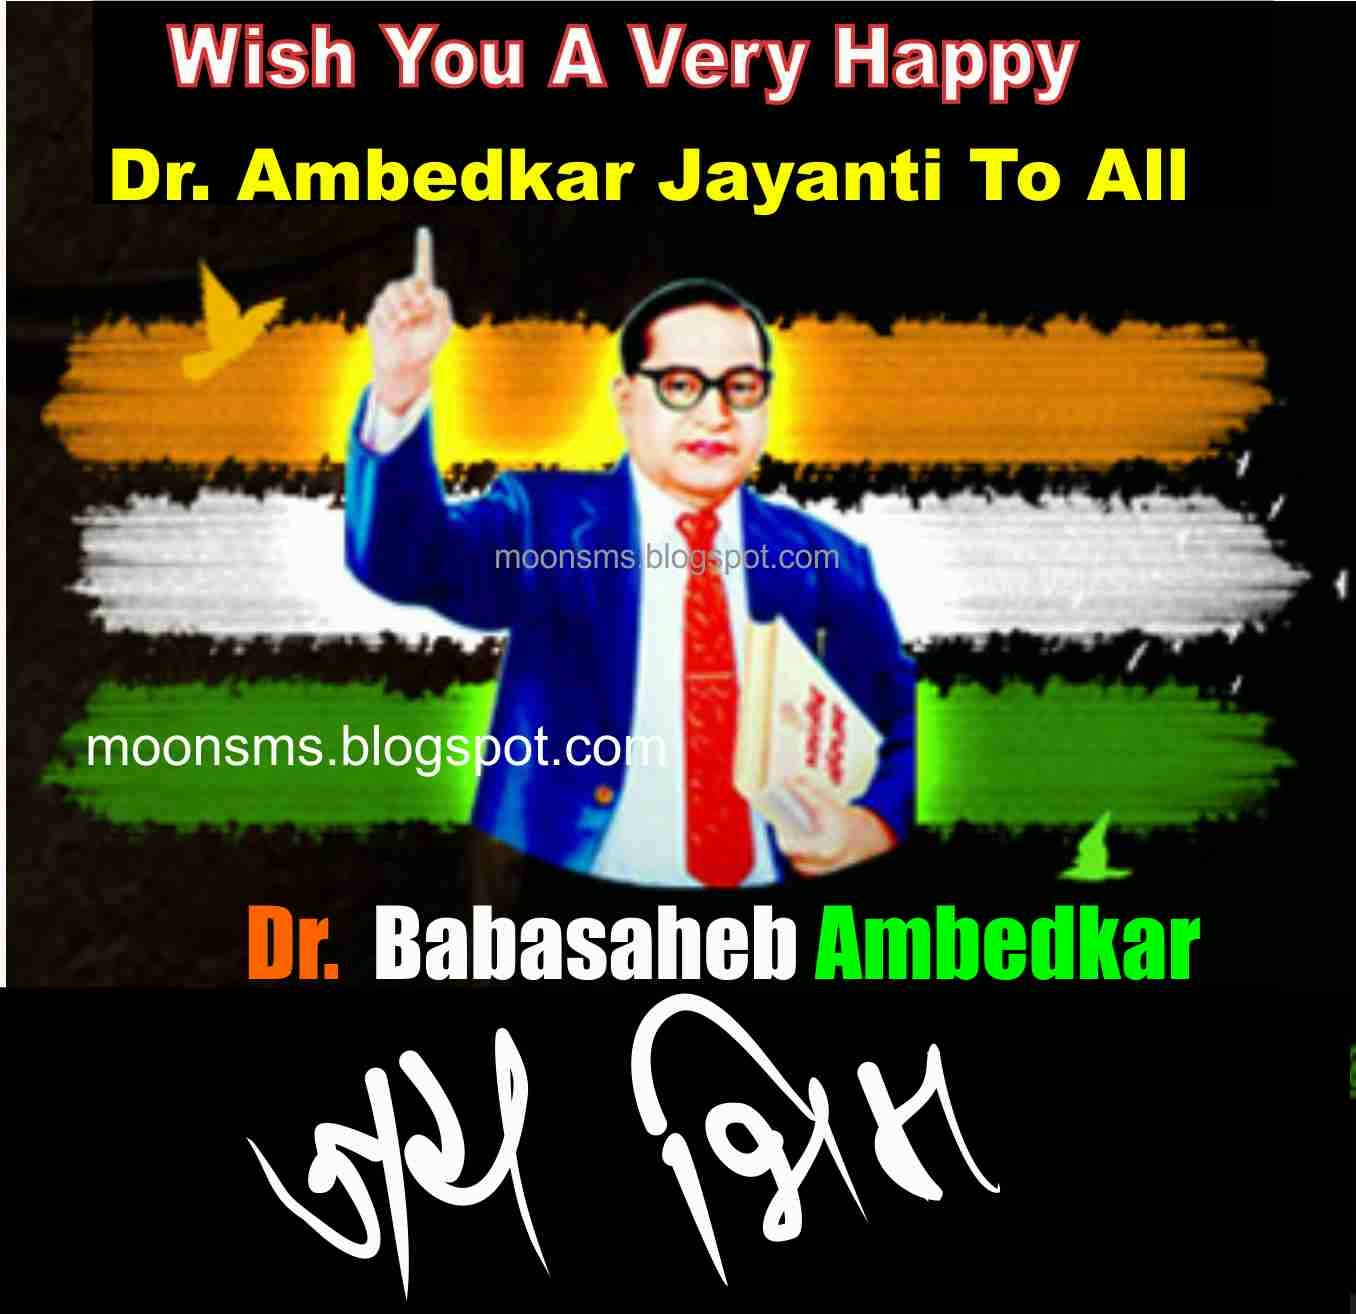 Dr Babasaheb Ambedkar Jayanti Photo The Galleries Of Hd Wallpaper